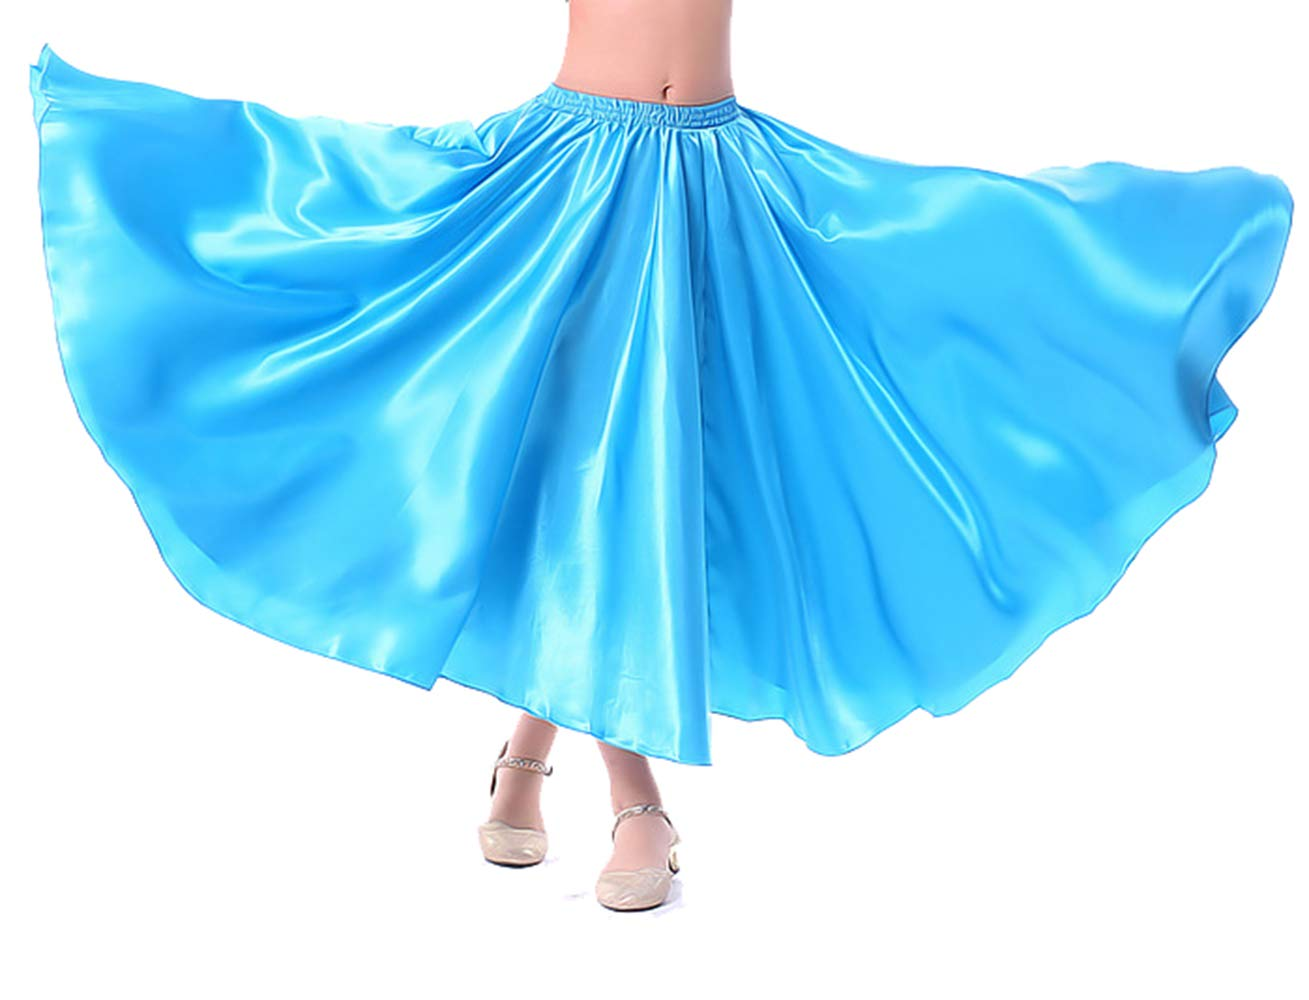 Lauthen.S Kids Gilrs Skirt for Belly Dance/Performance/Halloween Party, Satin Full Circle Tribal Skirt(Blue,M) by Lauthen.S